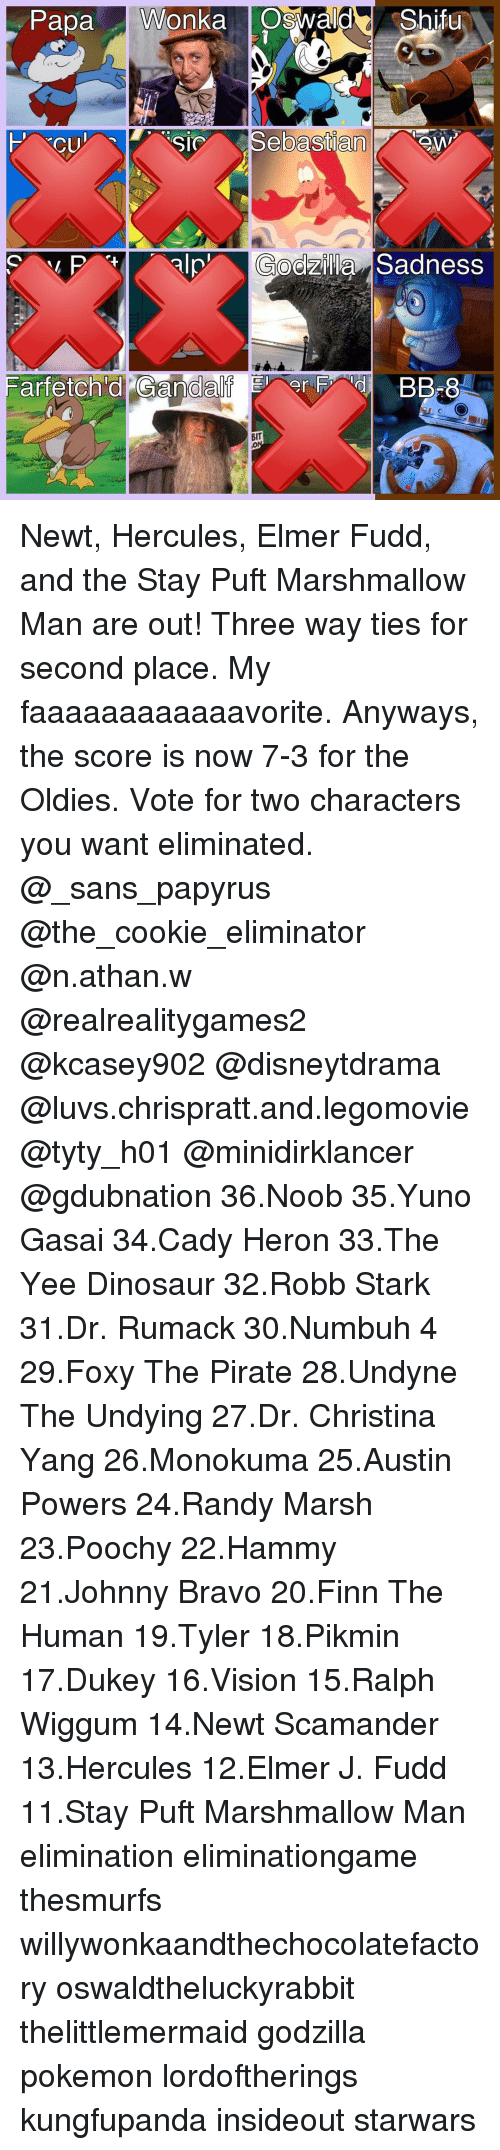 Yee Dinosaur: Papa  Wonka Oswald  Shifu  Seb  SIC  an  alp  Godzilla Sadness  Farfetch d Gandalf  er  Ndj BBP8  BIT Newt, Hercules, Elmer Fudd, and the Stay Puft Marshmallow Man are out! Three way ties for second place. My faaaaaaaaaaaavorite. Anyways, the score is now 7-3 for the Oldies. Vote for two characters you want eliminated. @_sans_papyrus @the_cookie_eliminator @n.athan.w @realrealitygames2 @kcasey902 @disneytdrama @luvs.chrispratt.and.legomovie @tyty_h01 @minidirklancer @gdubnation 36.Noob 35.Yuno Gasai 34.Cady Heron 33.The Yee Dinosaur 32.Robb Stark 31.Dr. Rumack 30.Numbuh 4 29.Foxy The Pirate 28.Undyne The Undying 27.Dr. Christina Yang 26.Monokuma 25.Austin Powers 24.Randy Marsh 23.Poochy 22.Hammy 21.Johnny Bravo 20.Finn The Human 19.Tyler 18.Pikmin 17.Dukey 16.Vision 15.Ralph Wiggum 14.Newt Scamander 13.Hercules 12.Elmer J. Fudd 11.Stay Puft Marshmallow Man elimination eliminationgame thesmurfs willywonkaandthechocolatefactory oswaldtheluckyrabbit thelittlemermaid godzilla pokemon lordoftherings kungfupanda insideout starwars